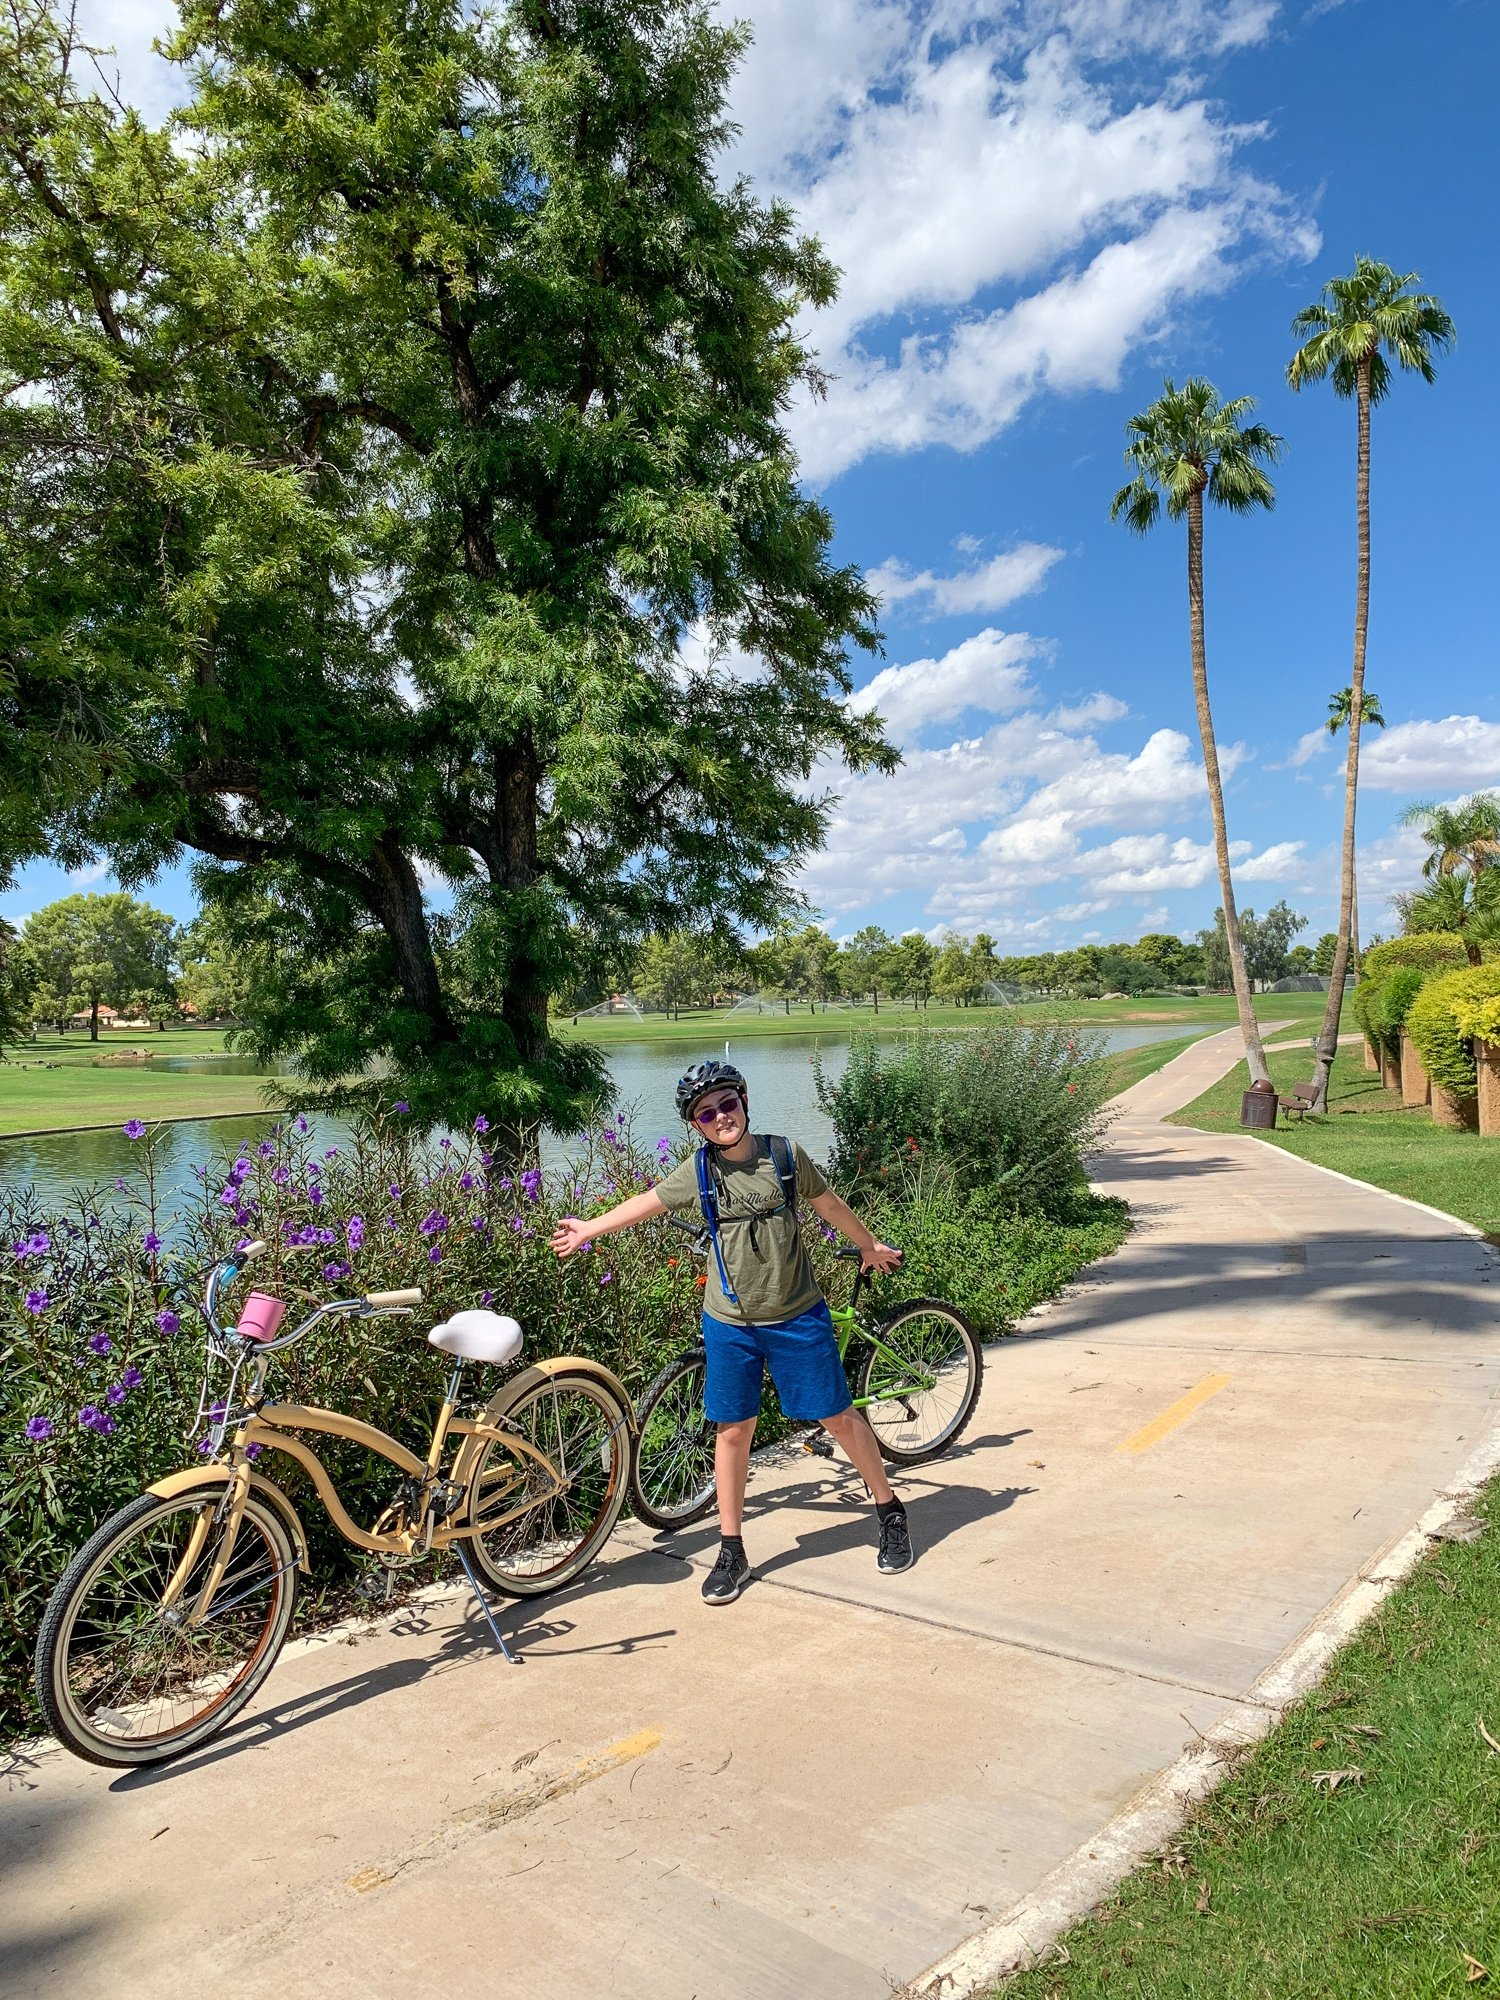 Bicycling Indian Bend Wash Greenbelt outdoors in Scottsdale, AZ